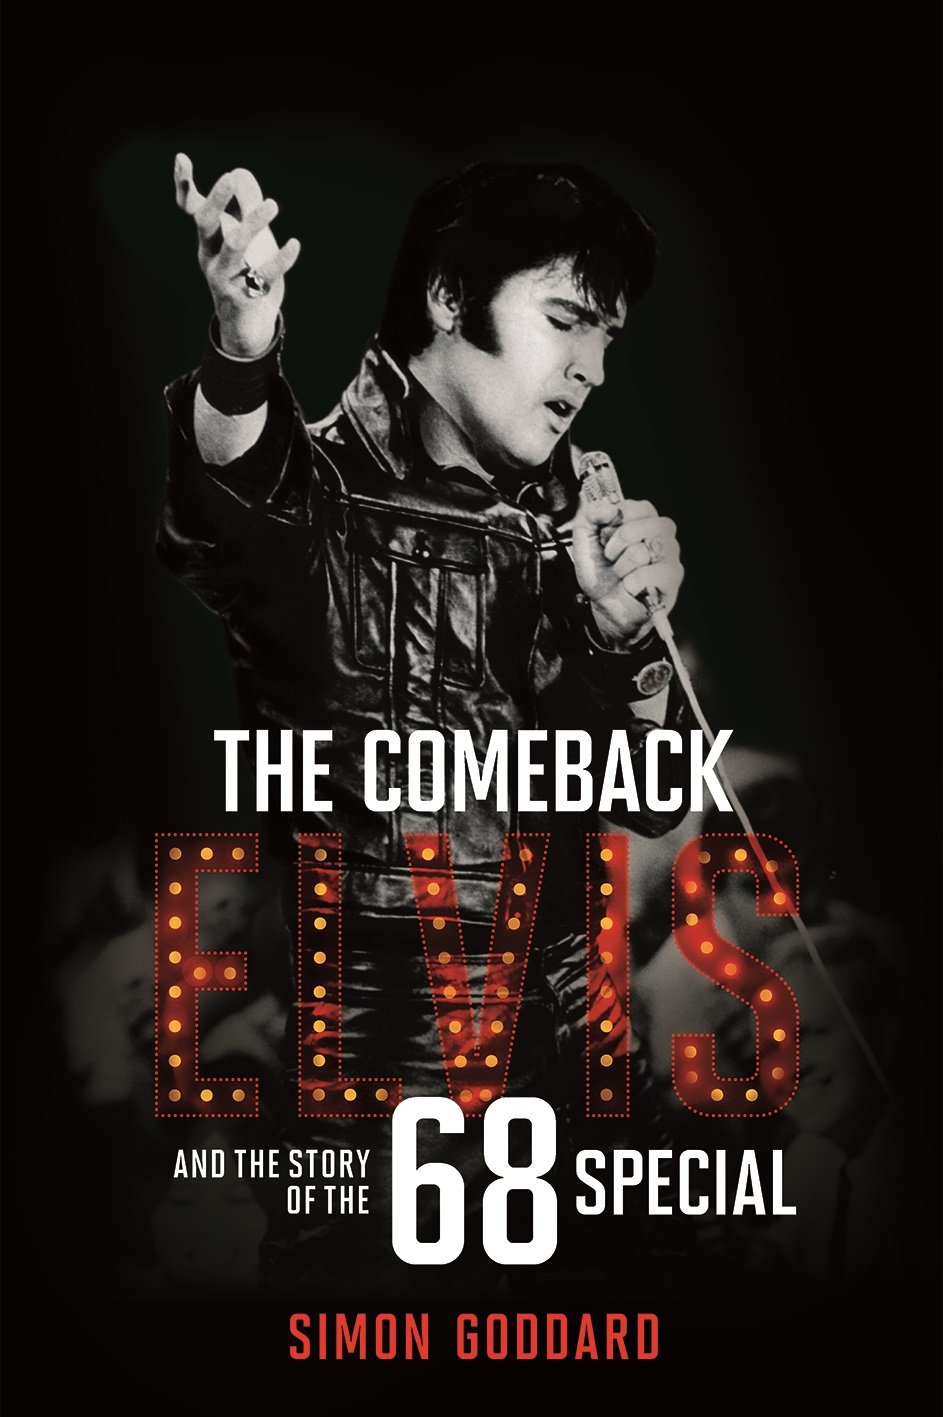 Simon goddard  the comeback  elvis and the story of the 68 special